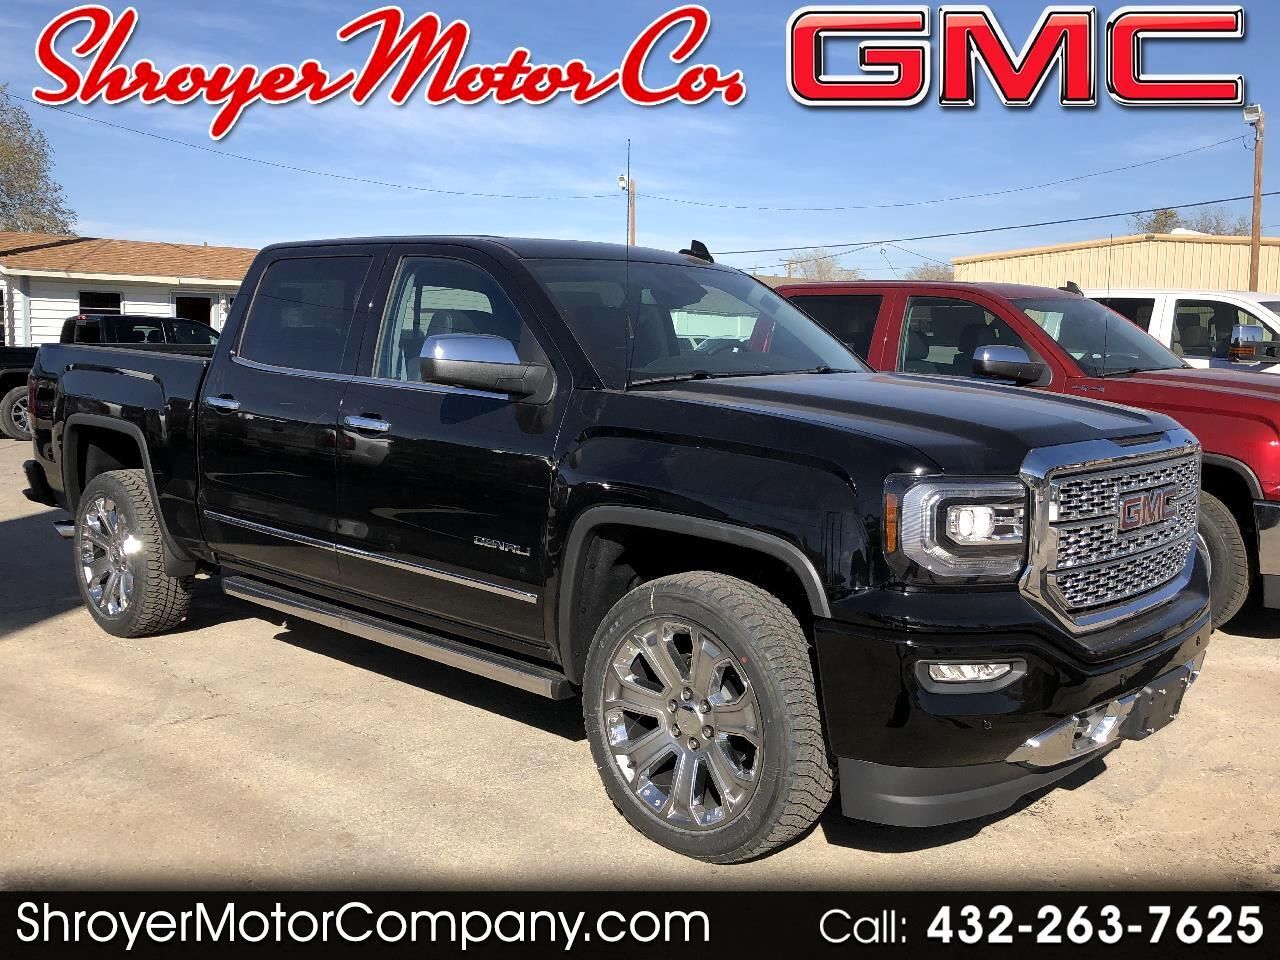 2018 GMC Sierra 1500 Denali Crew Cab Long Box 4WD